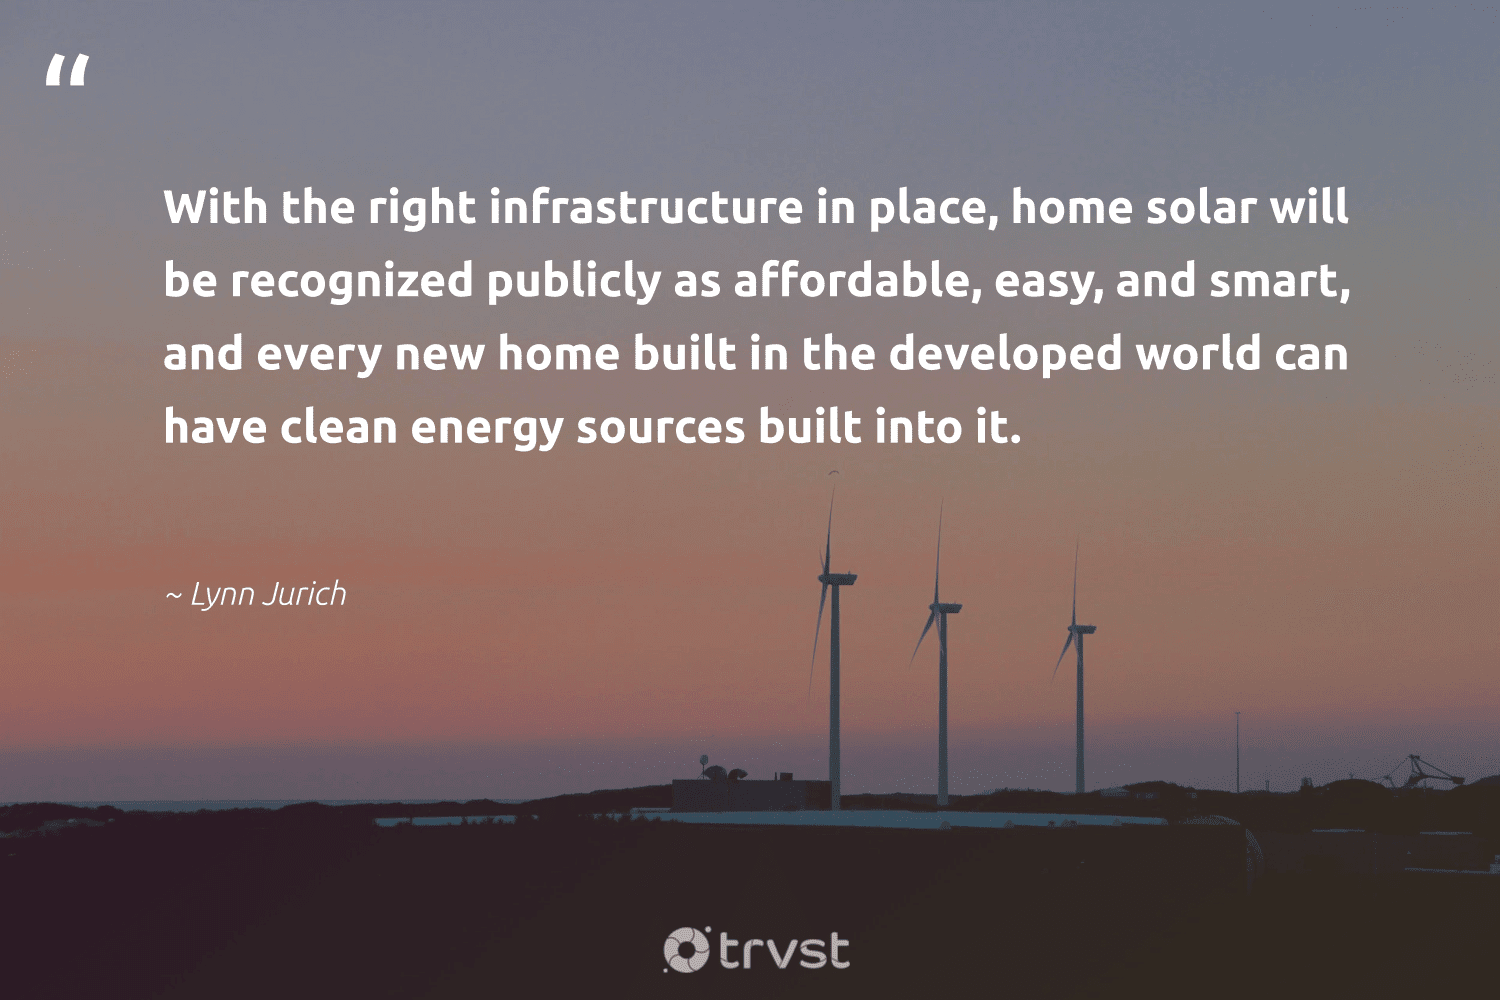 """""""With the right infrastructure in place, home solar will be recognized publicly as affordable, easy, and smart, and every new home built in the developed world can have clean energy sources built into it.""""  - Lynn Jurich #trvst #quotes #renewableenergy #energy #cleanenergy #affordable #solar #100percentrenewable #100percentclean #greenlife #sustainability #beinspired"""